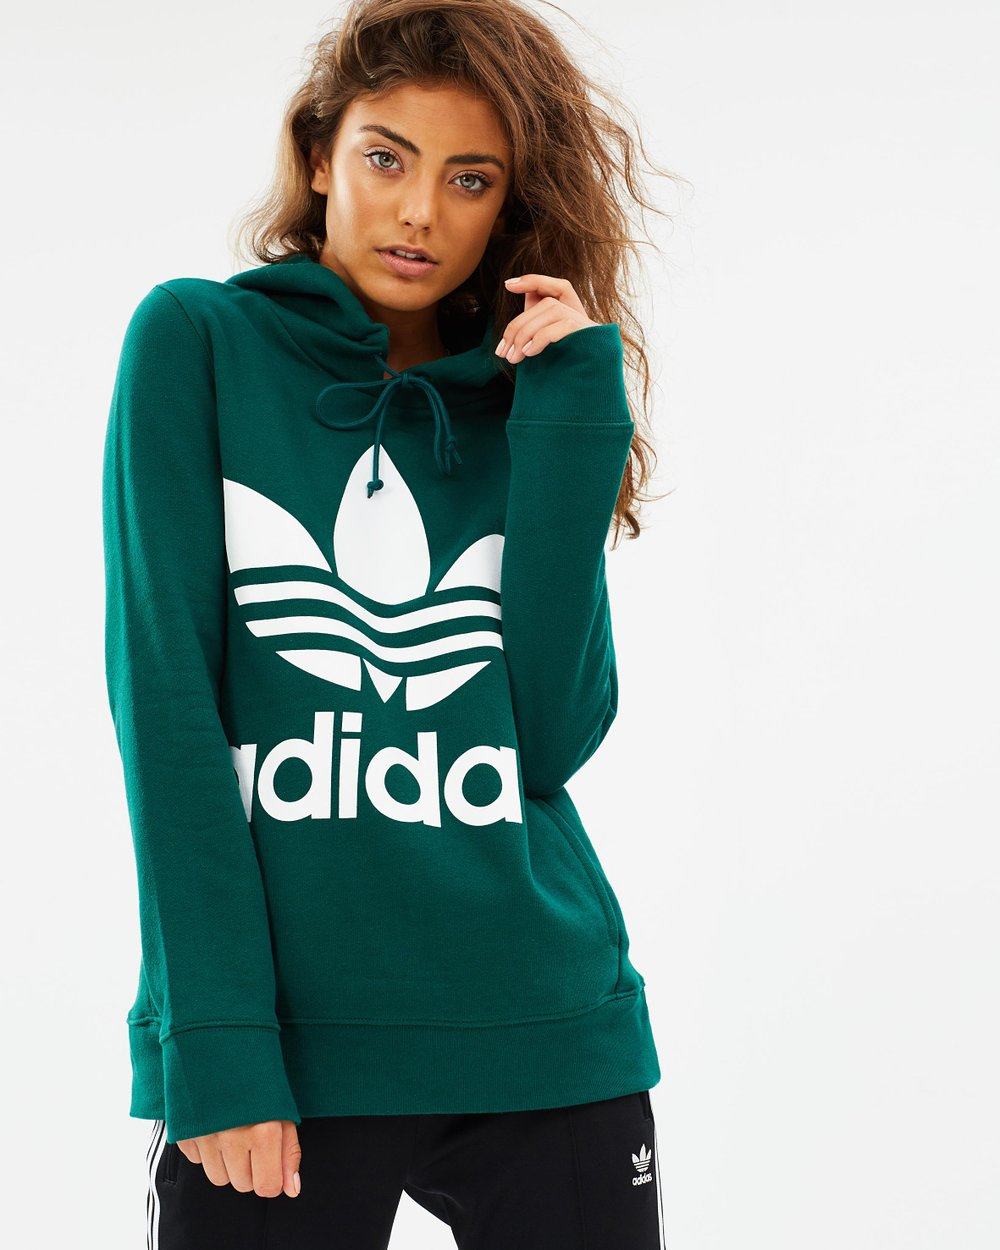 7592419c05a804 adicolor Trefoil Hoodie by adidas Originals Online | THE ICONIC | Australia